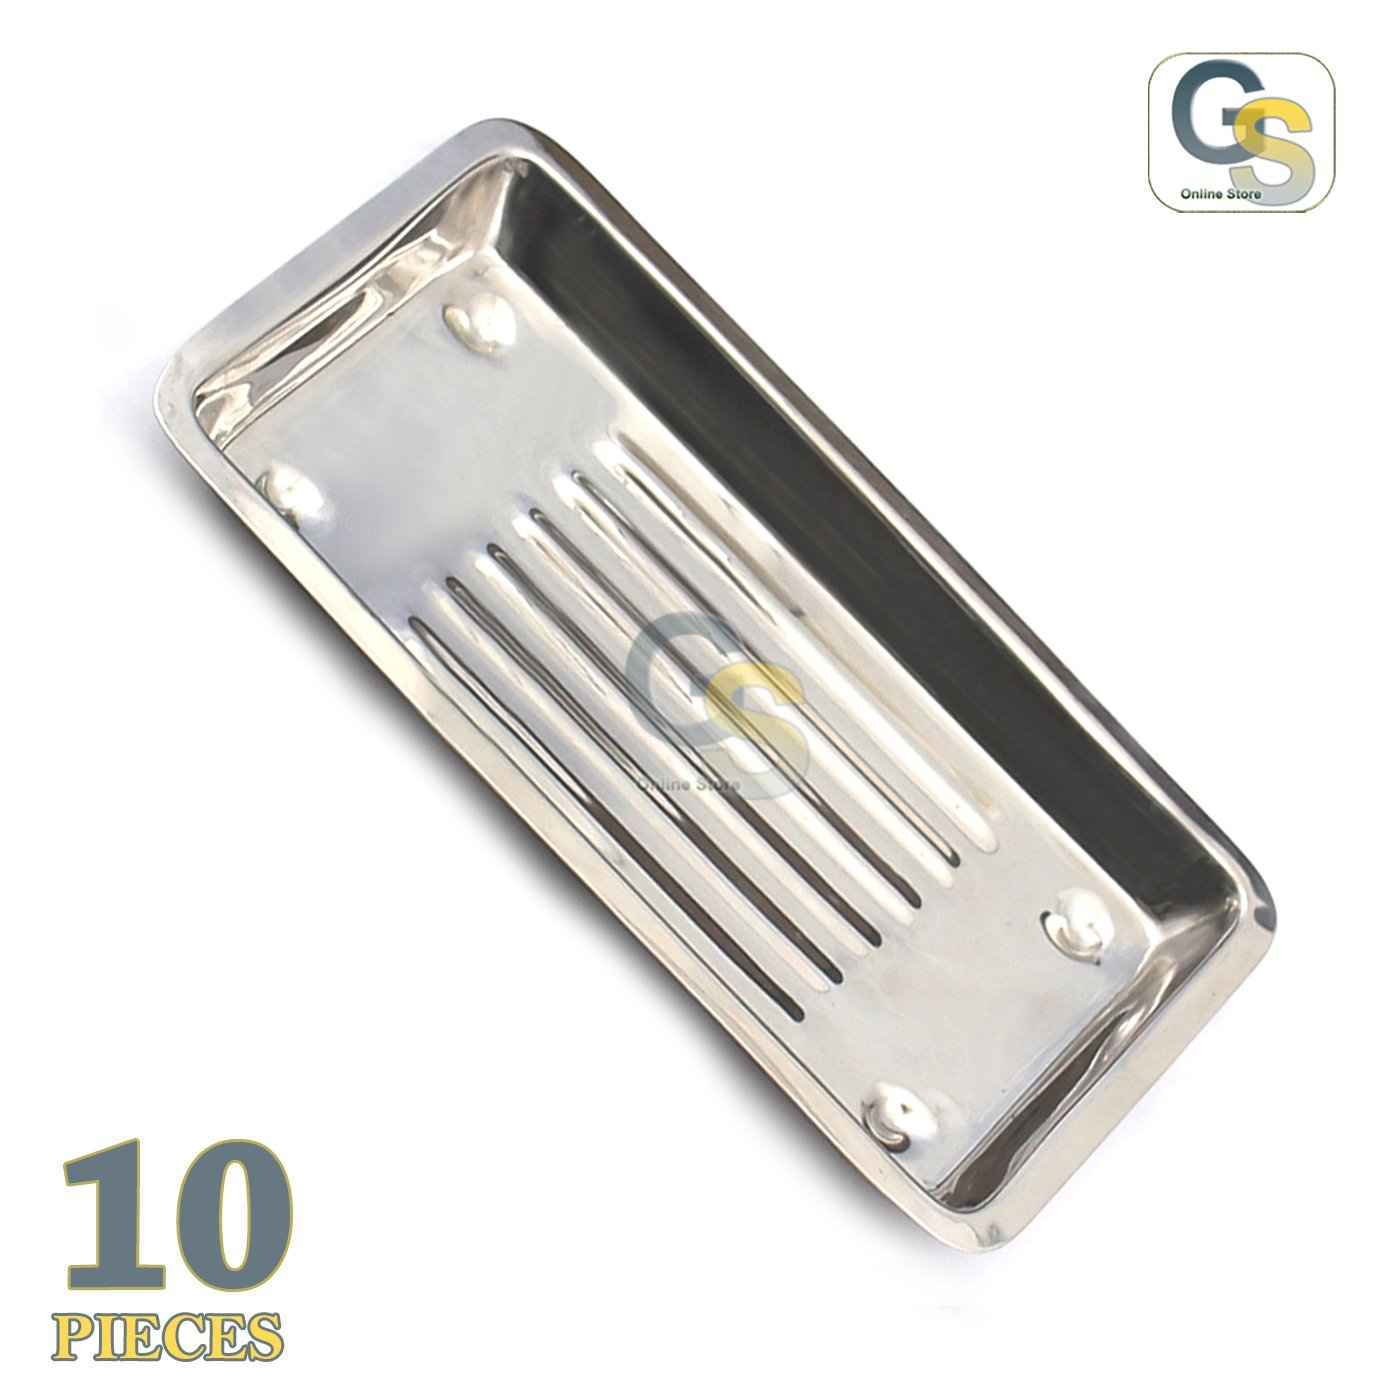 G.S Set of 10 Piece Scaler Tray Dental Instruments Best Quality by G.S ONLINE STORE